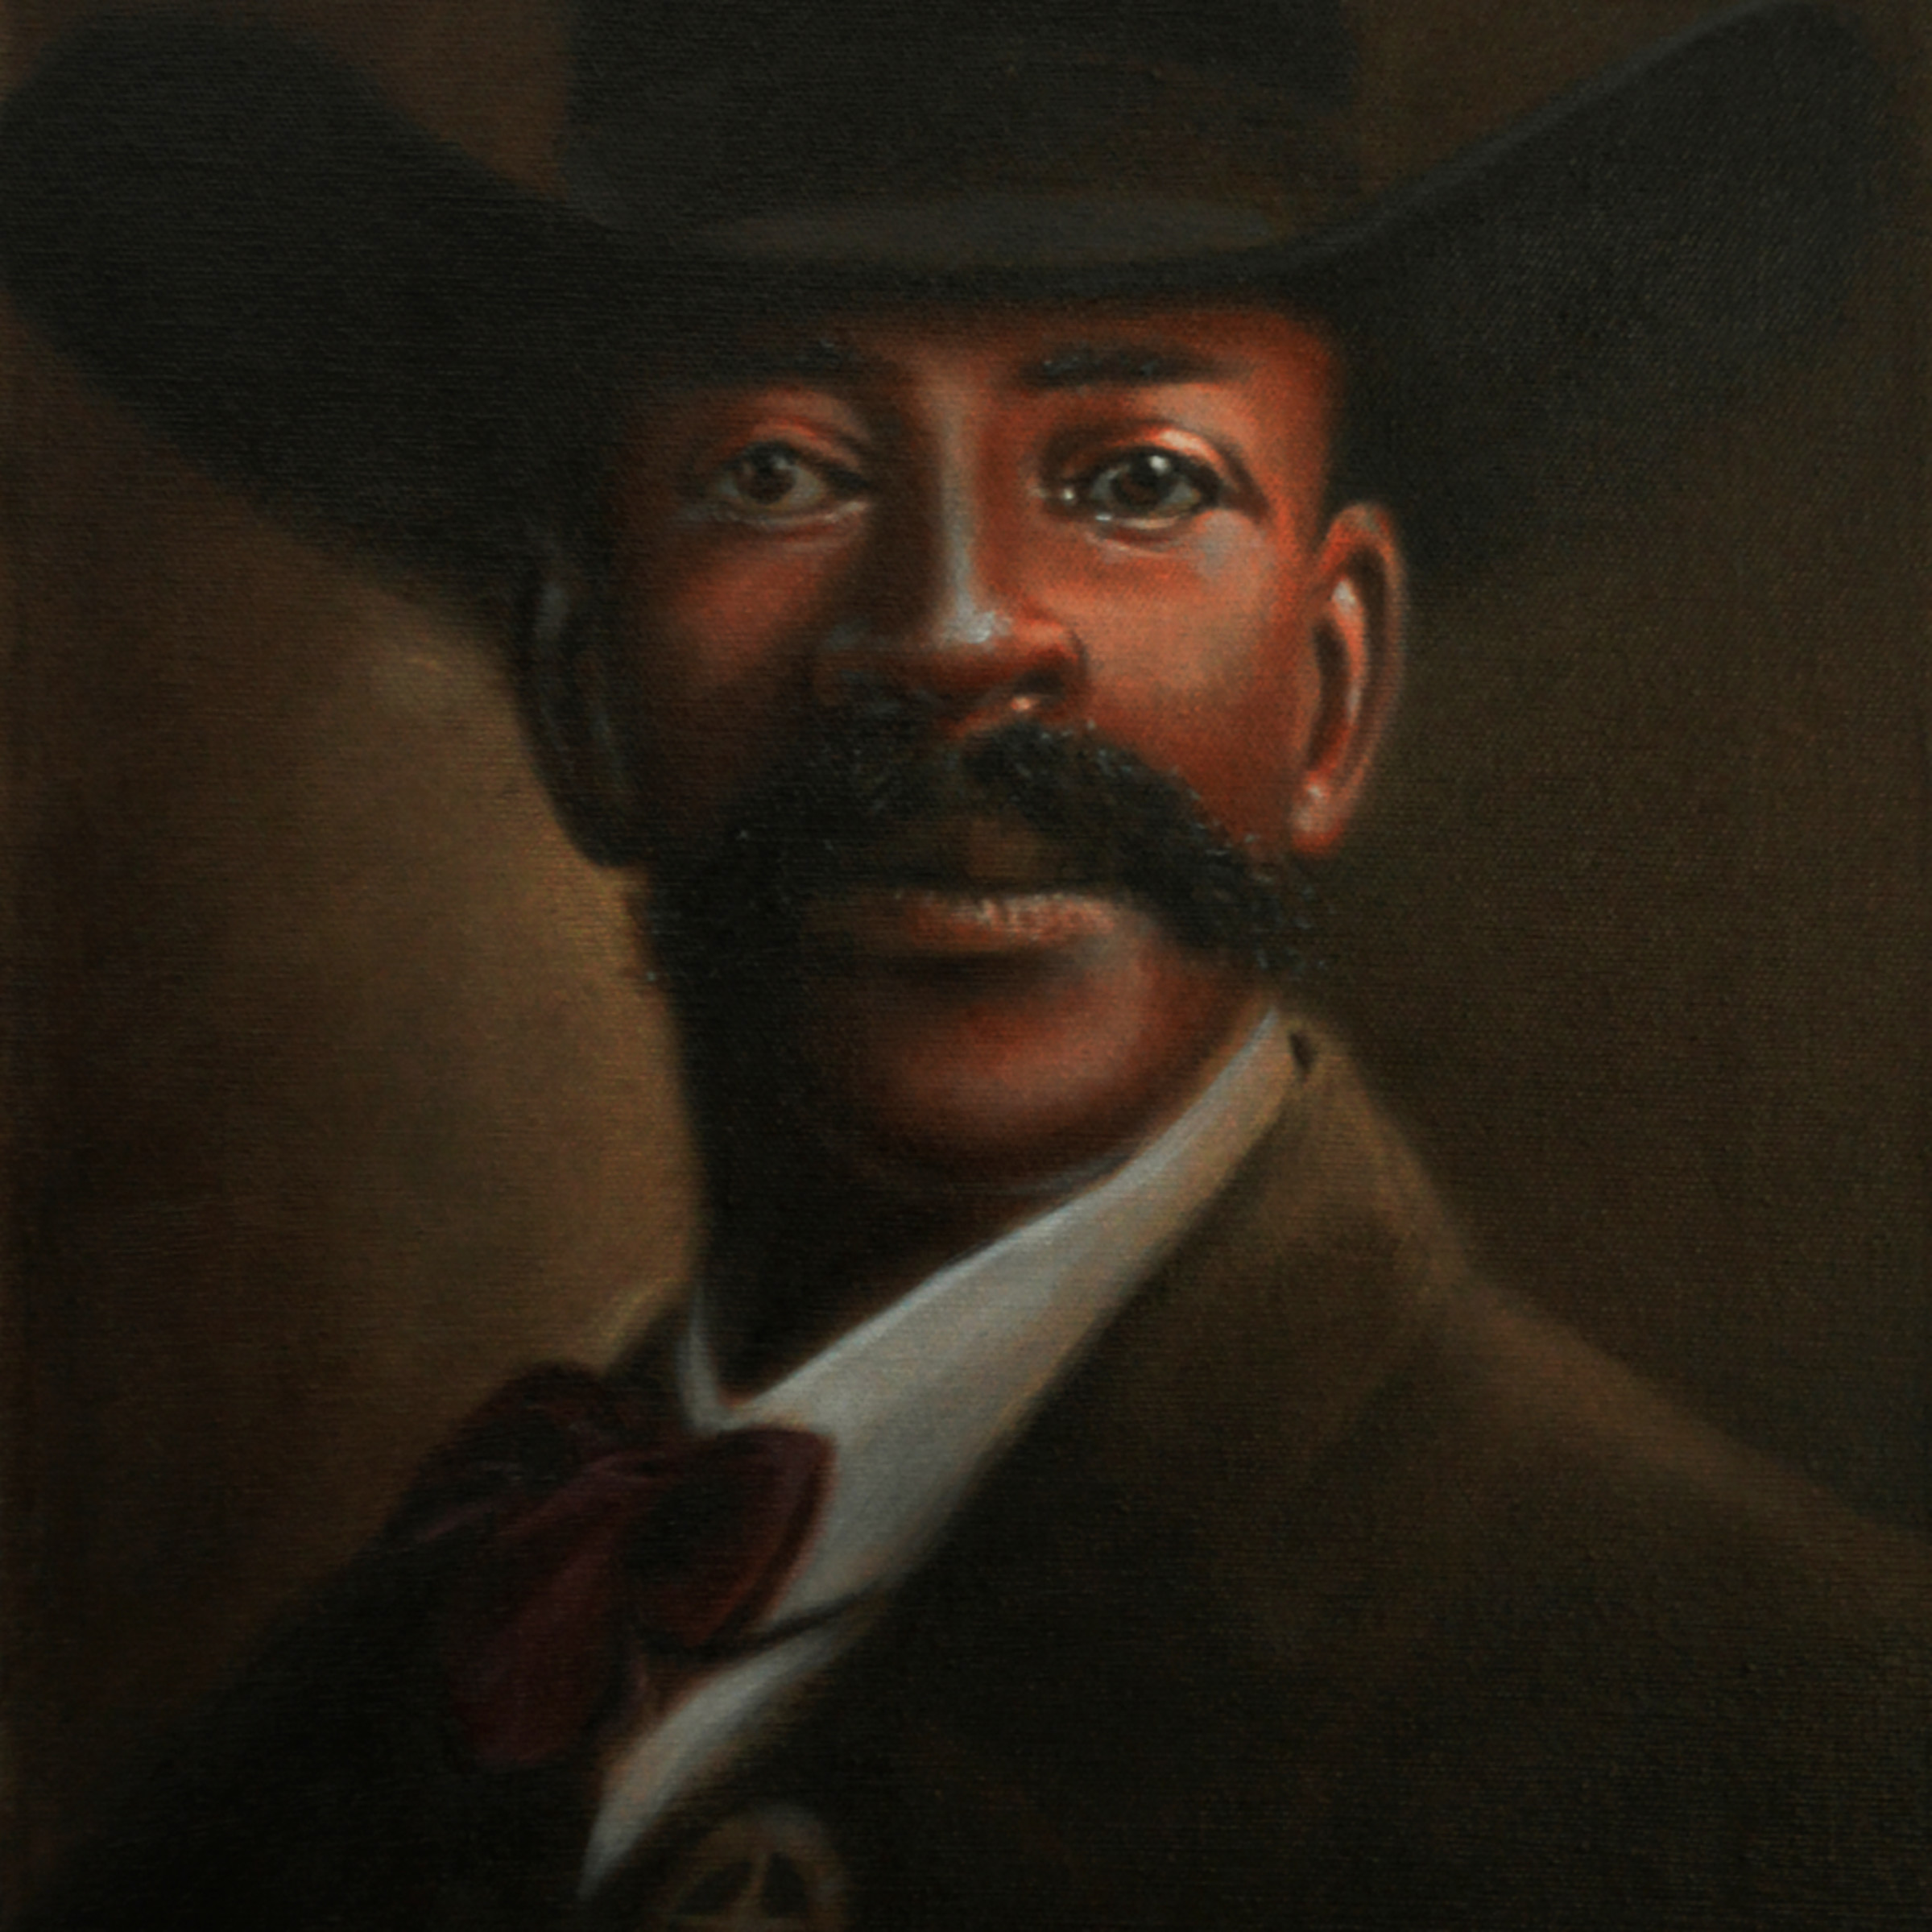 Bass reeves my8xao